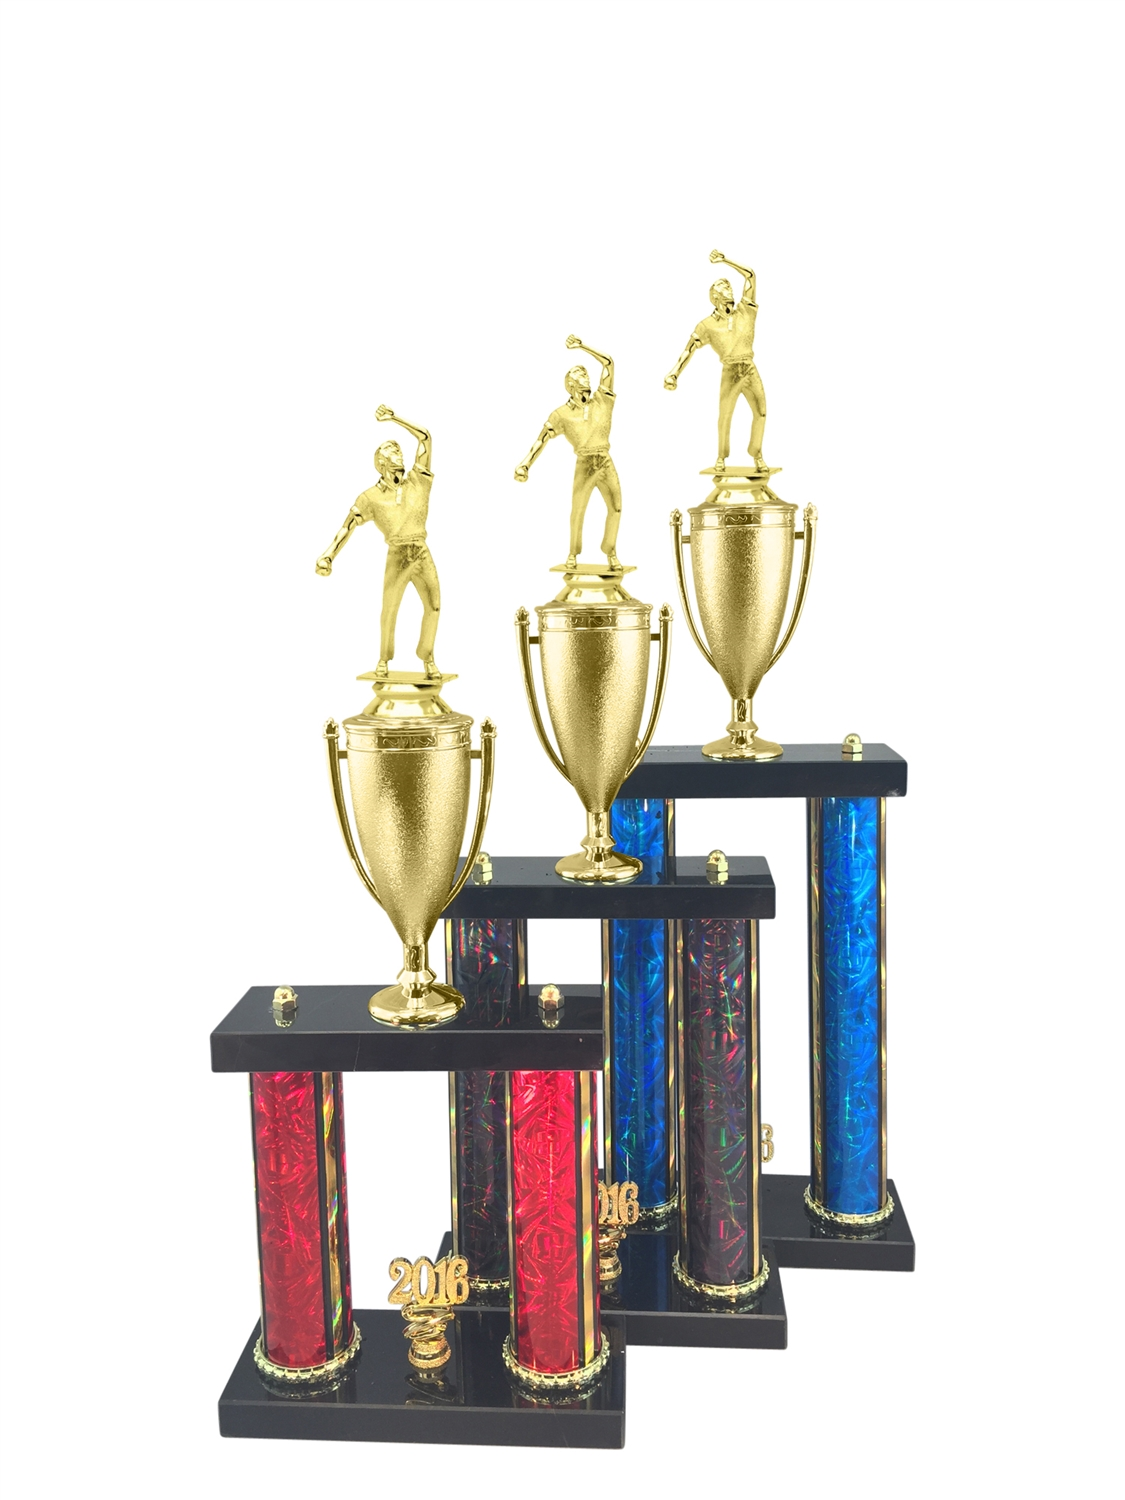 2 Post Cricket Bowler Trophy in 11 Color & 3 Size Options